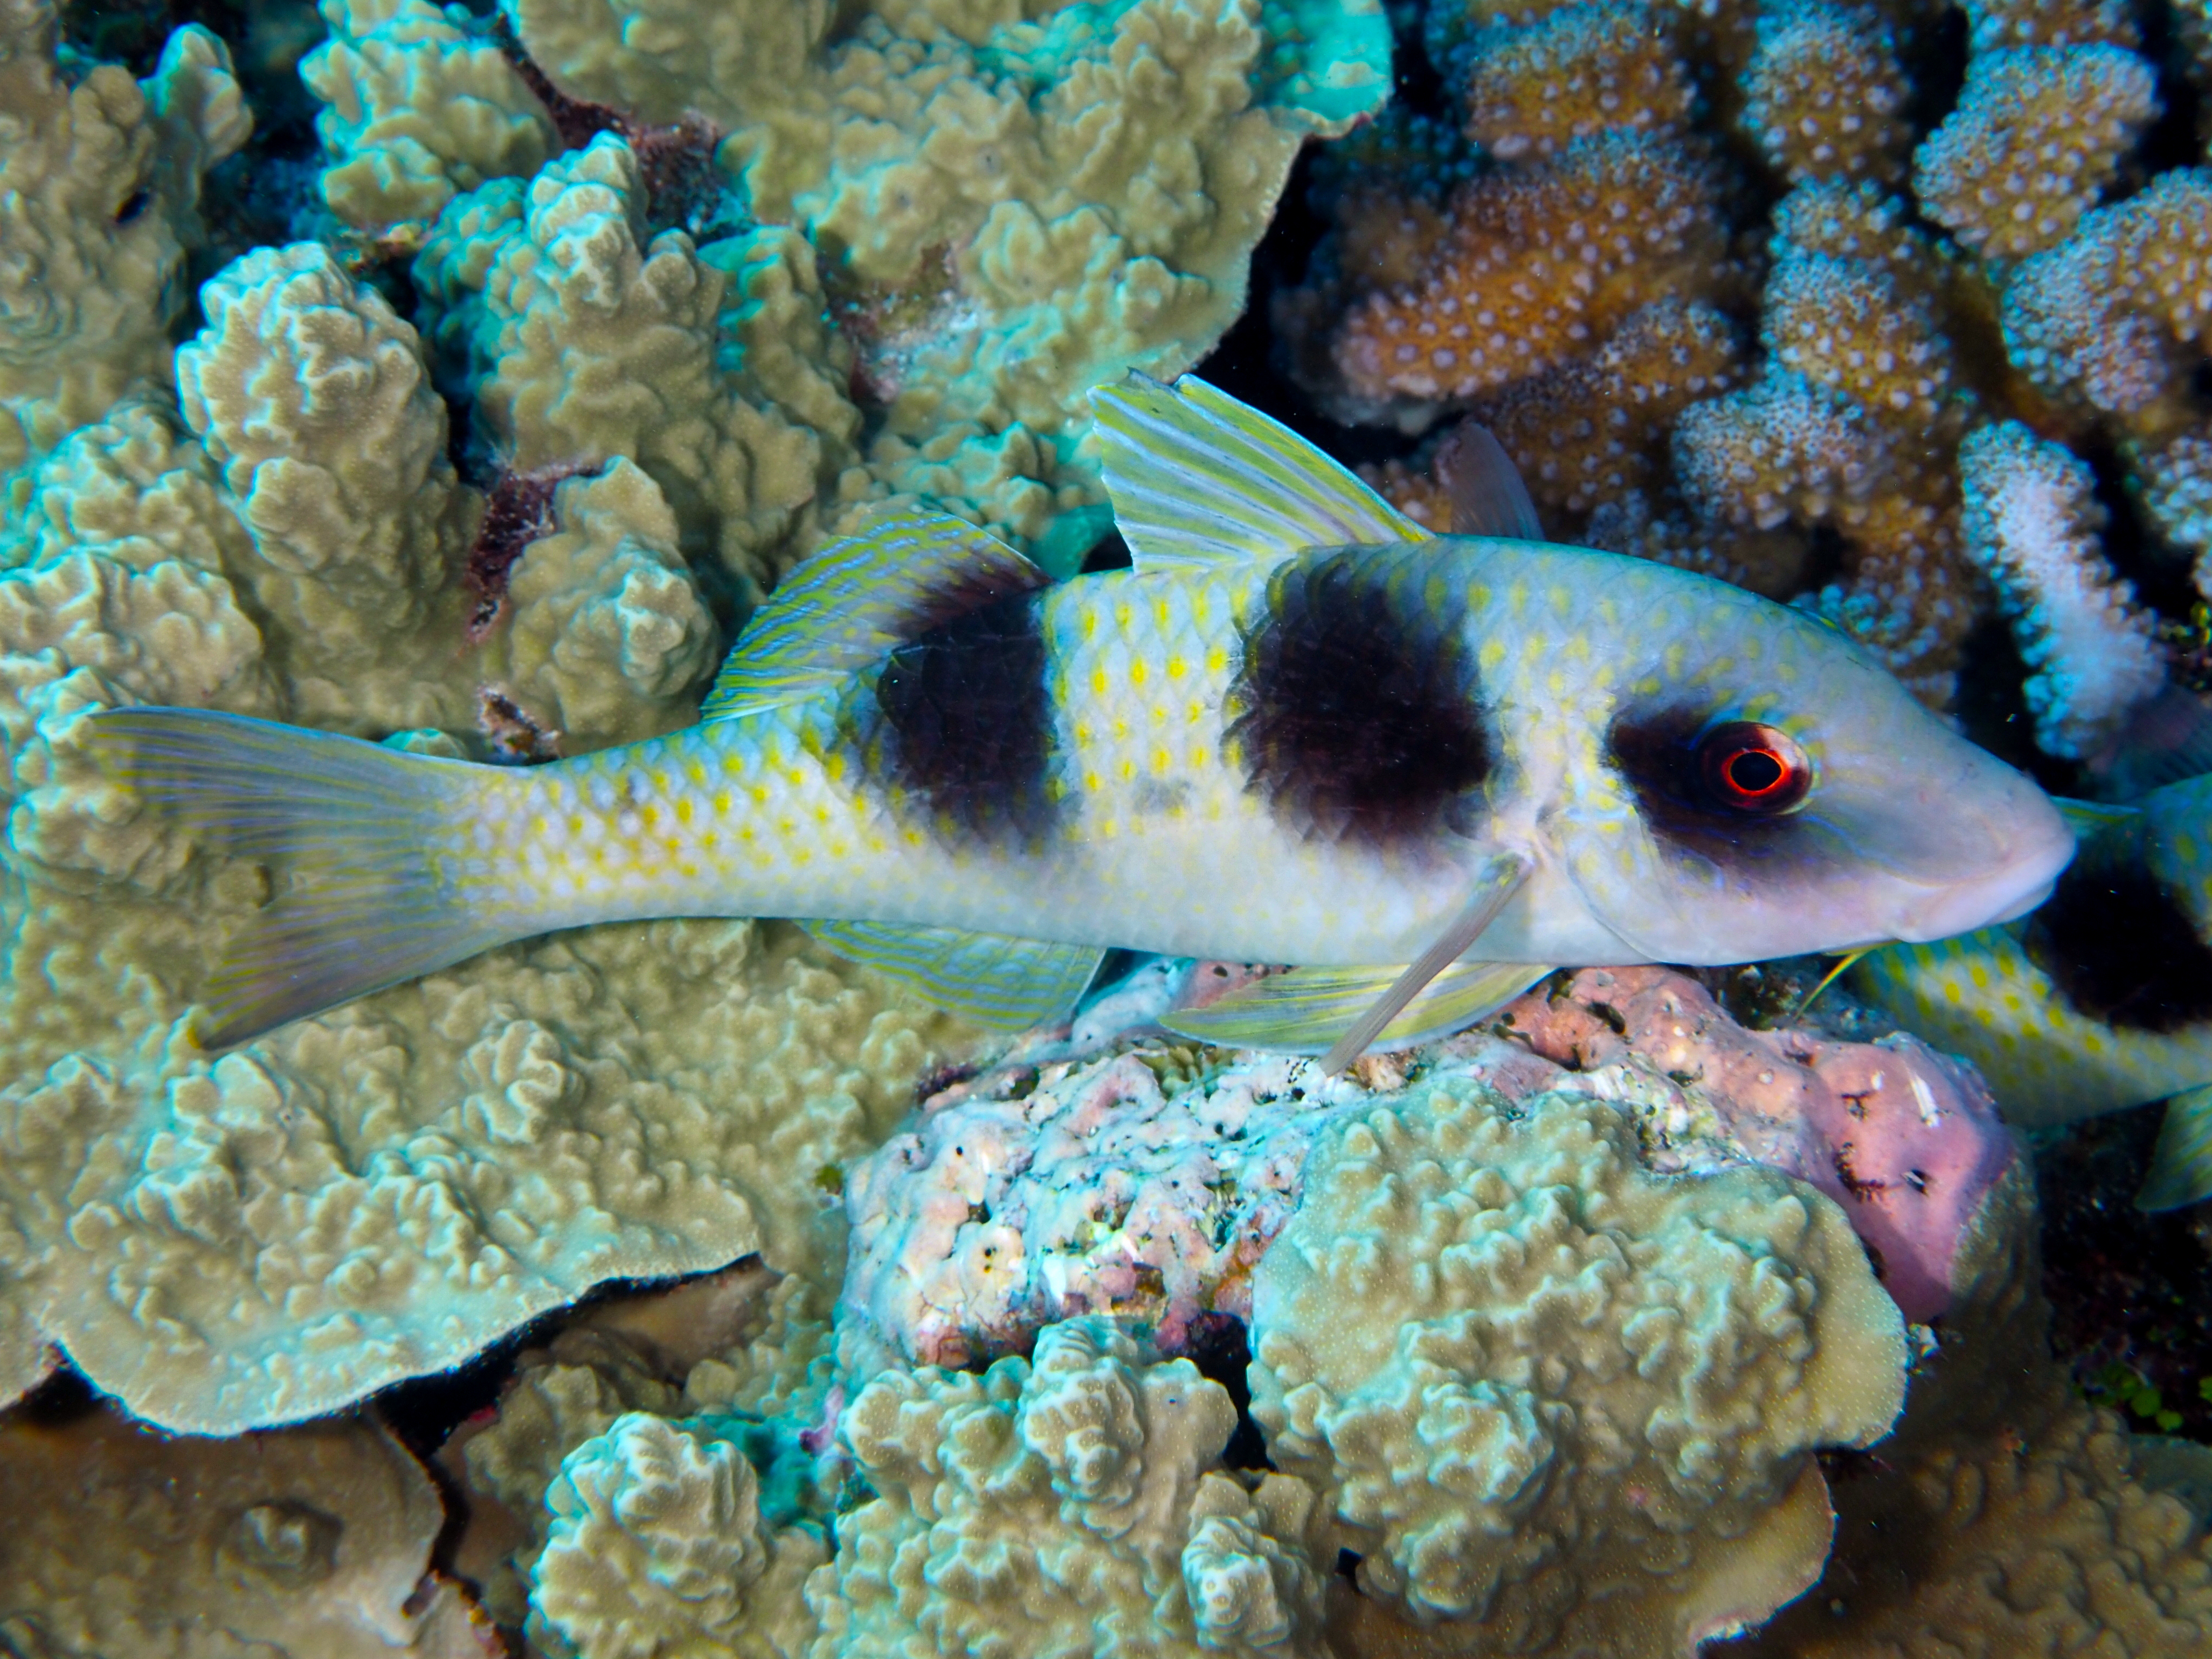 Doublebar Goatfish - Parupeneus crassilabris - Great Barrier Reef, Australia